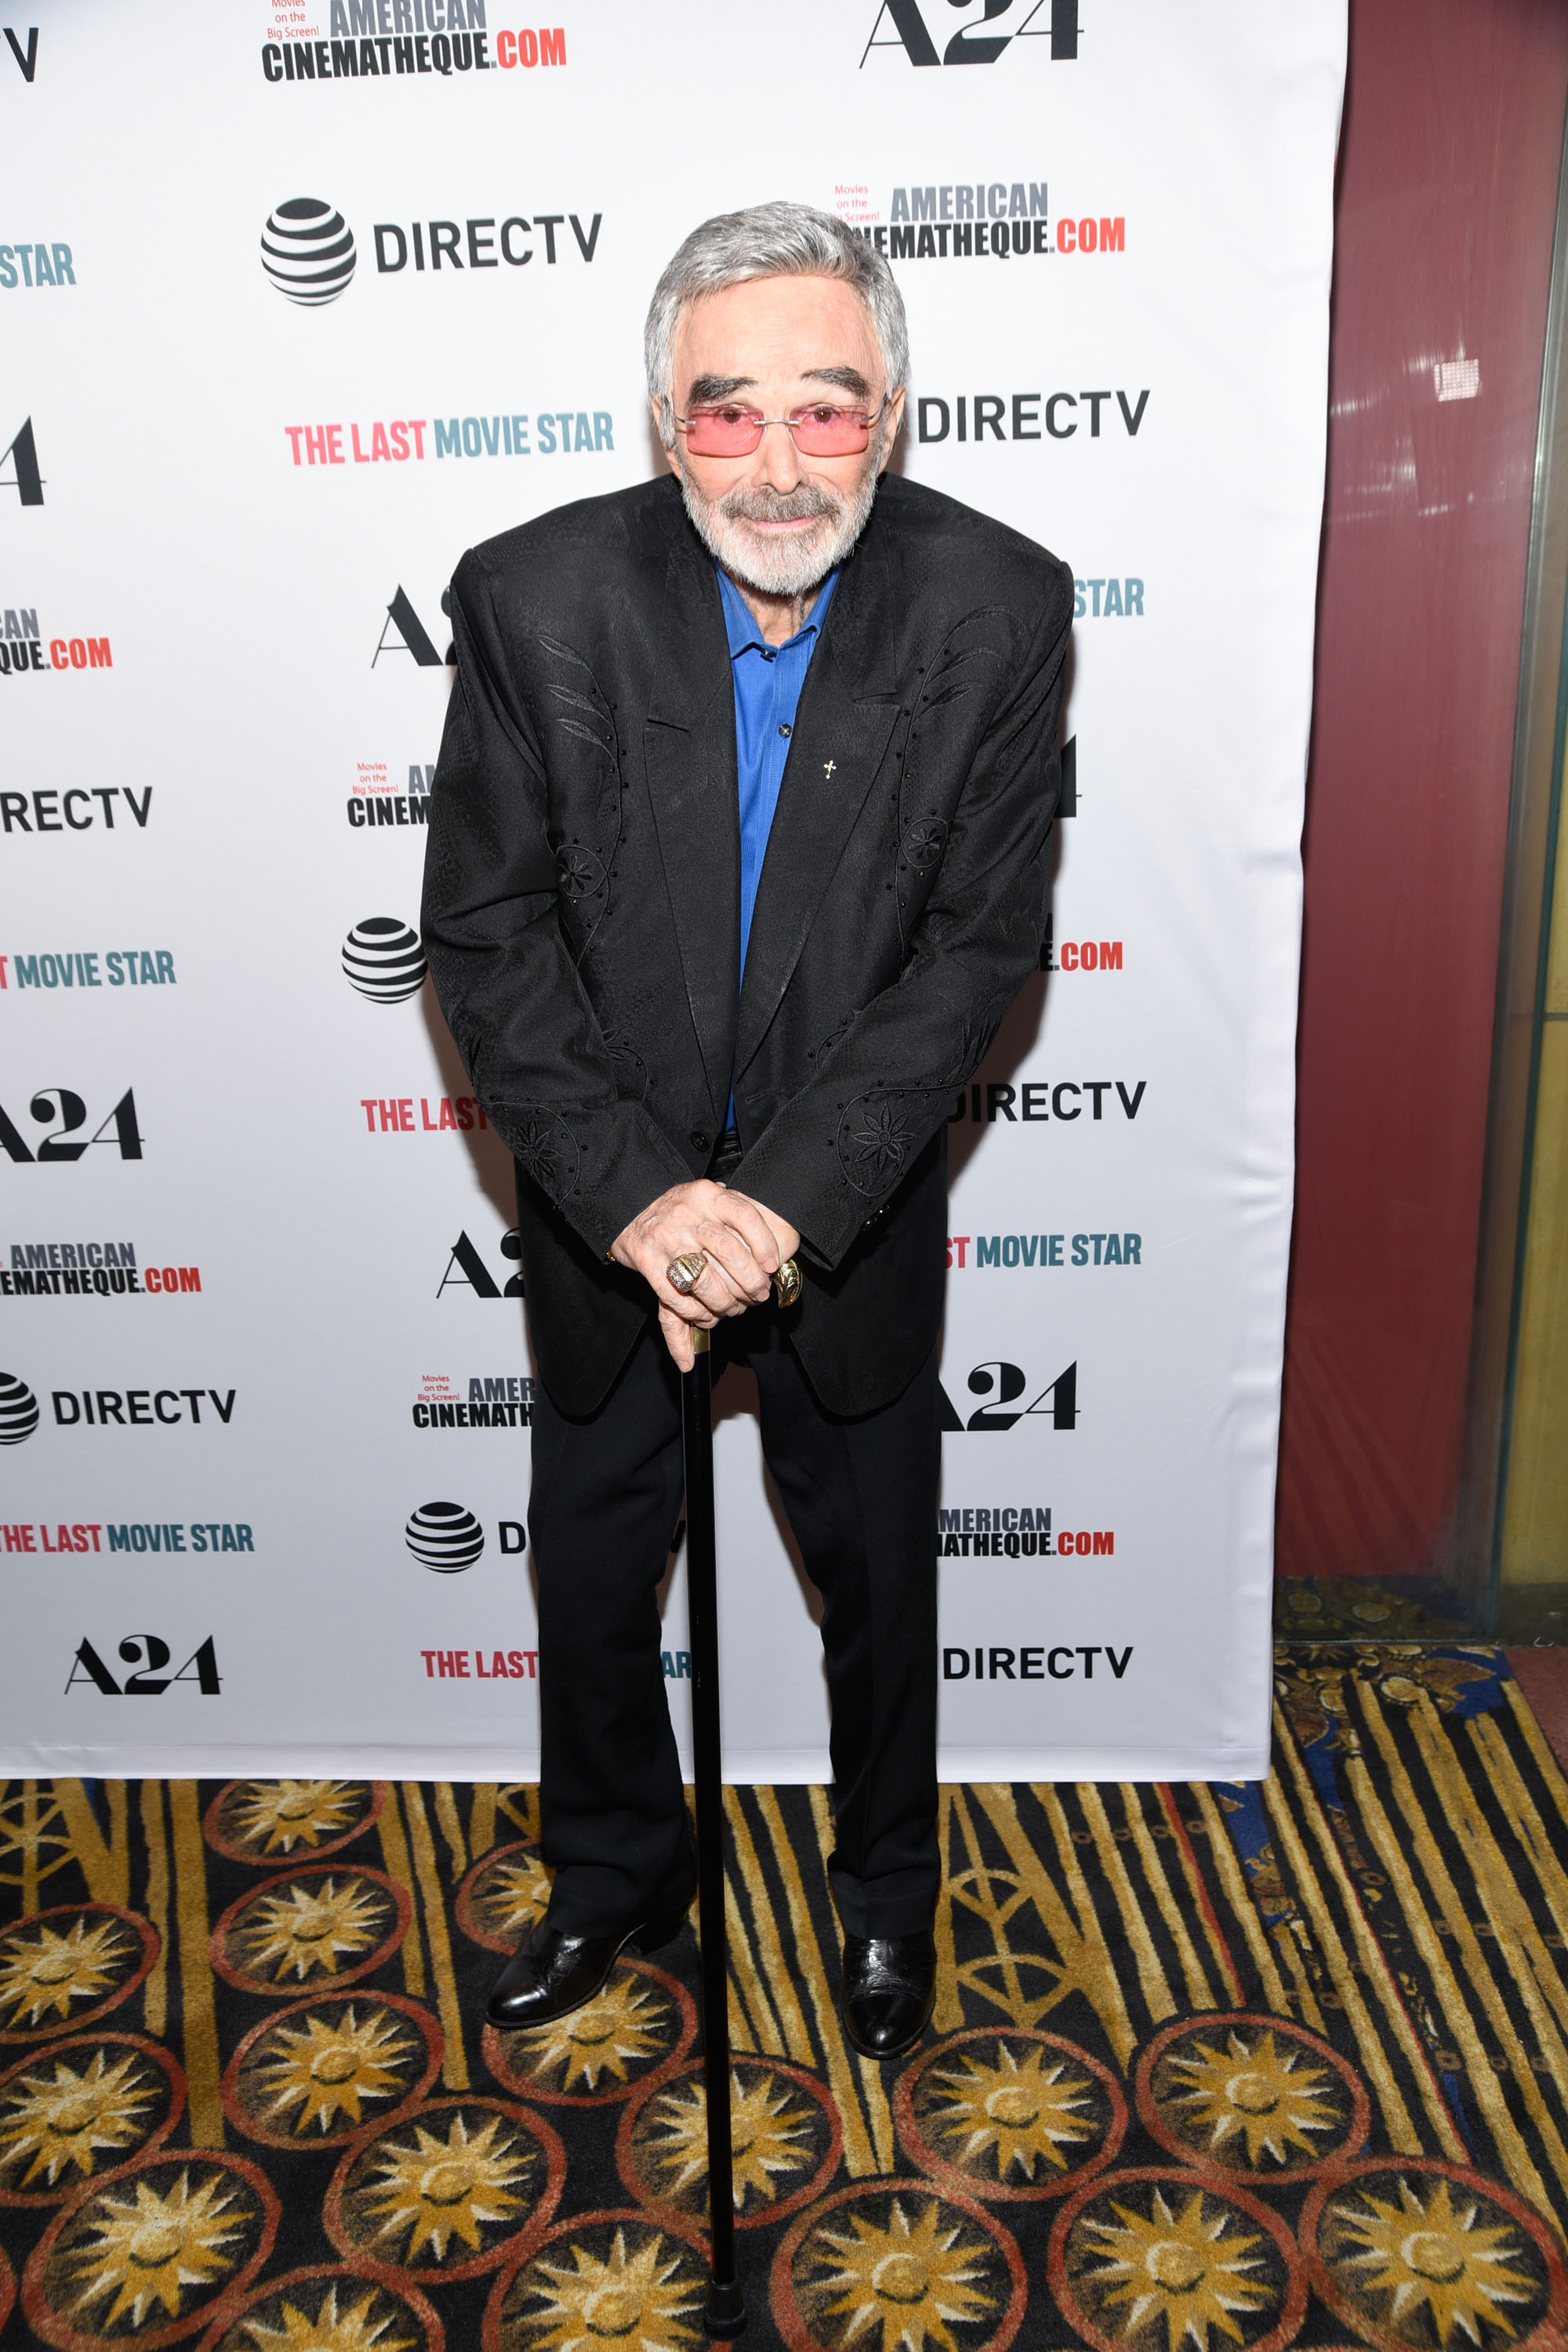 Actor Burt Reynolds attends the Los Angeles premiere of 'The Last Movie Star' at the Egyptian Theatre on March 22, 2018 in Hollywood, California.